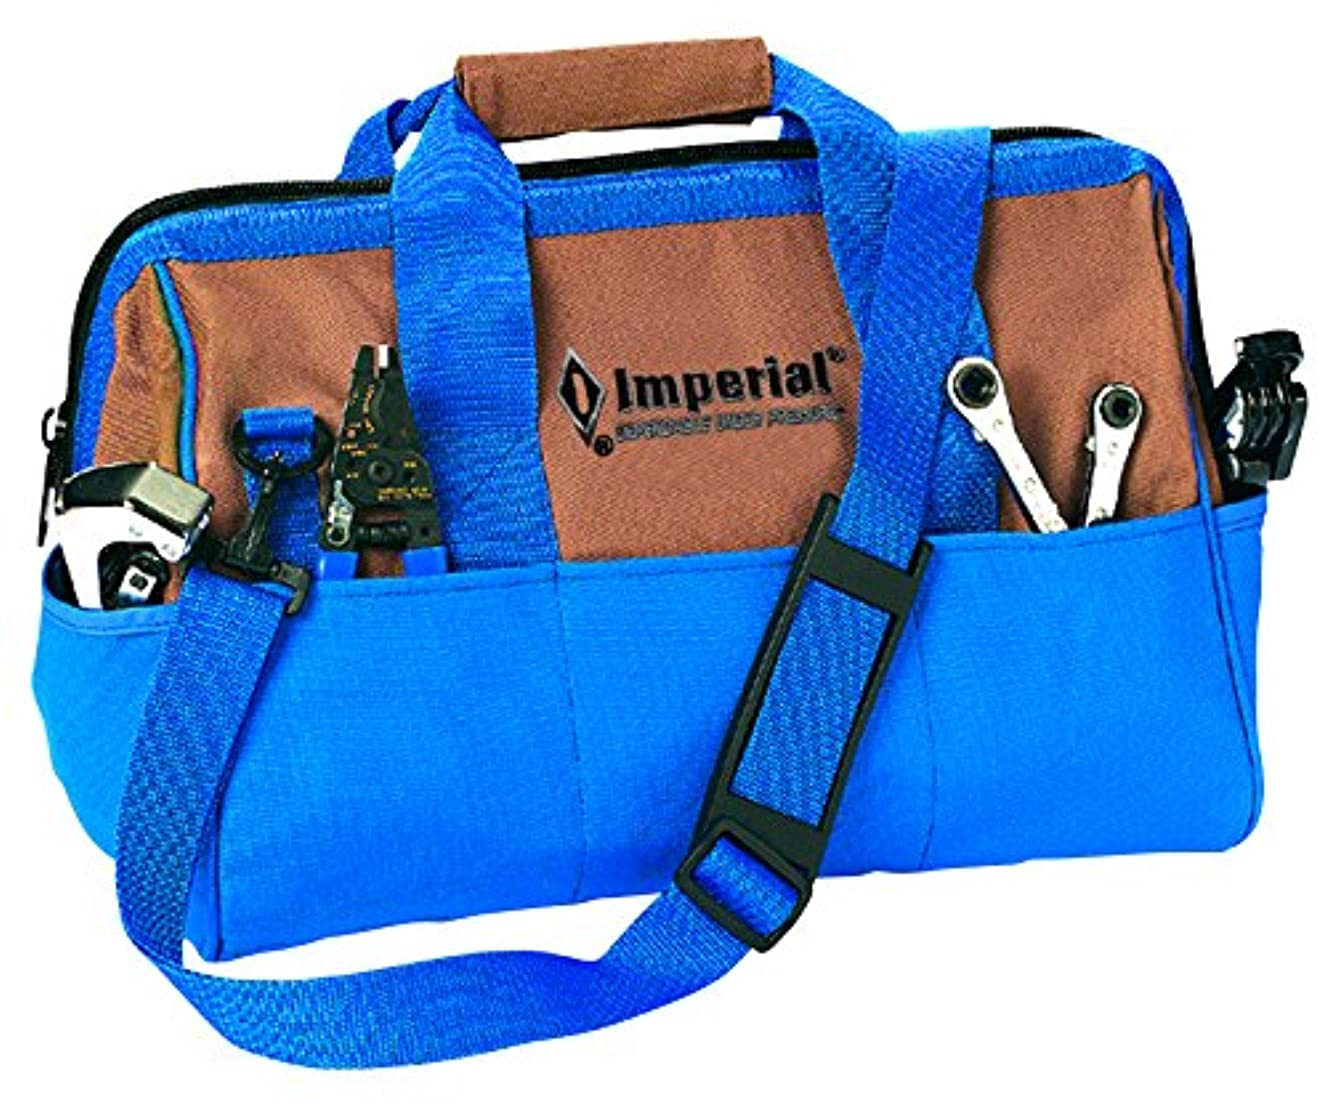 Imperial Tool TB52 15 Pocket Professional Tool Bag with Strap